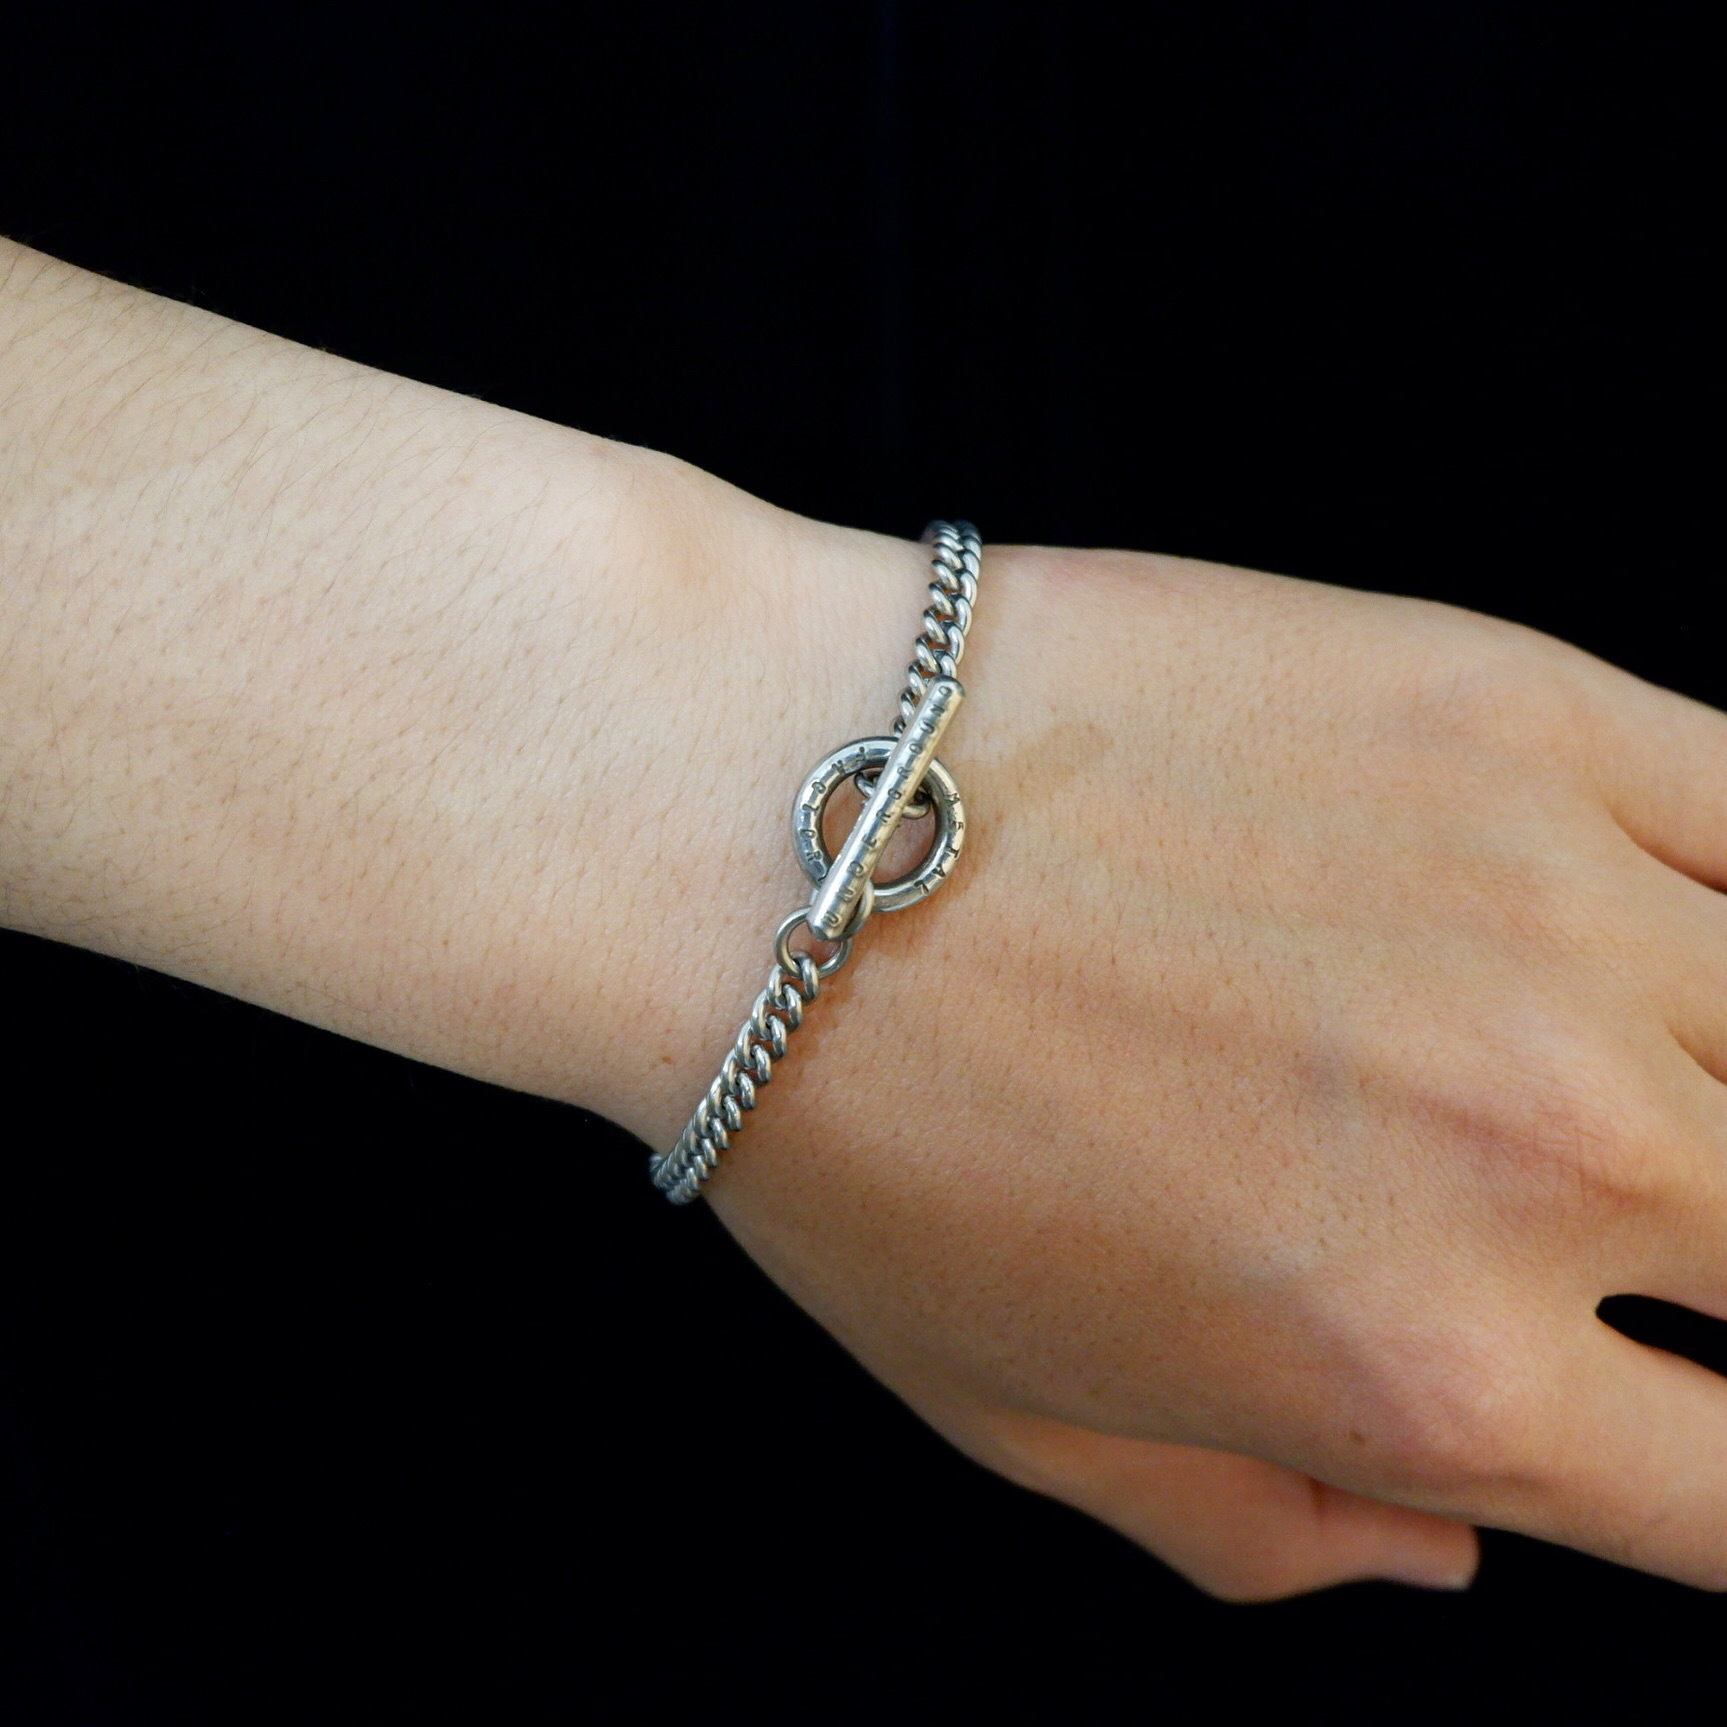 【UMB-009】Narrow Chain Bracelet